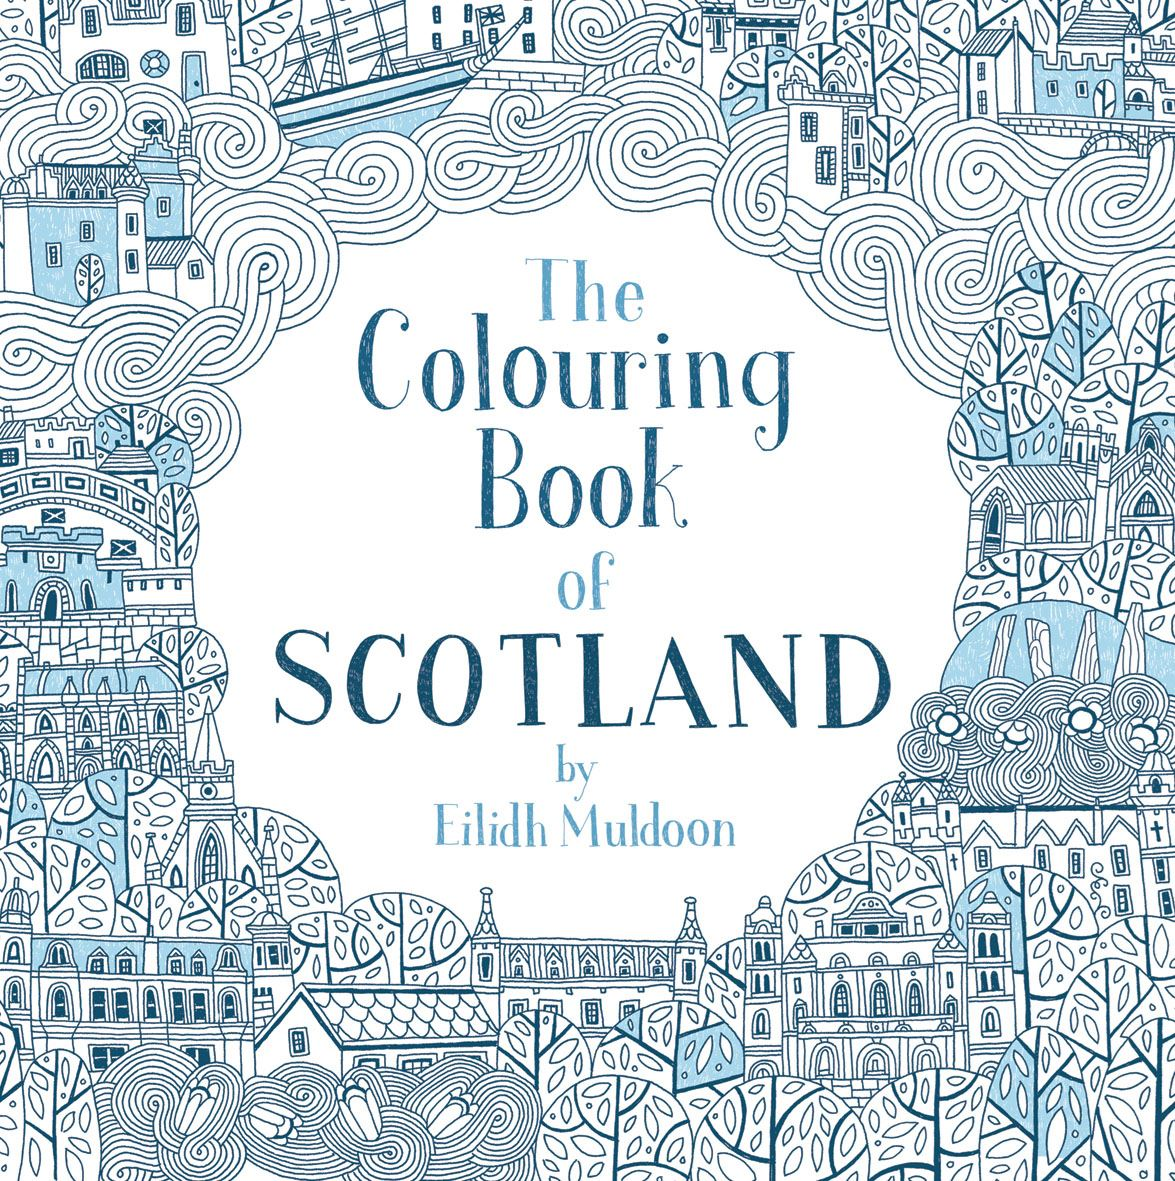 The Colouring Book of Scotland by Eilidh Munro